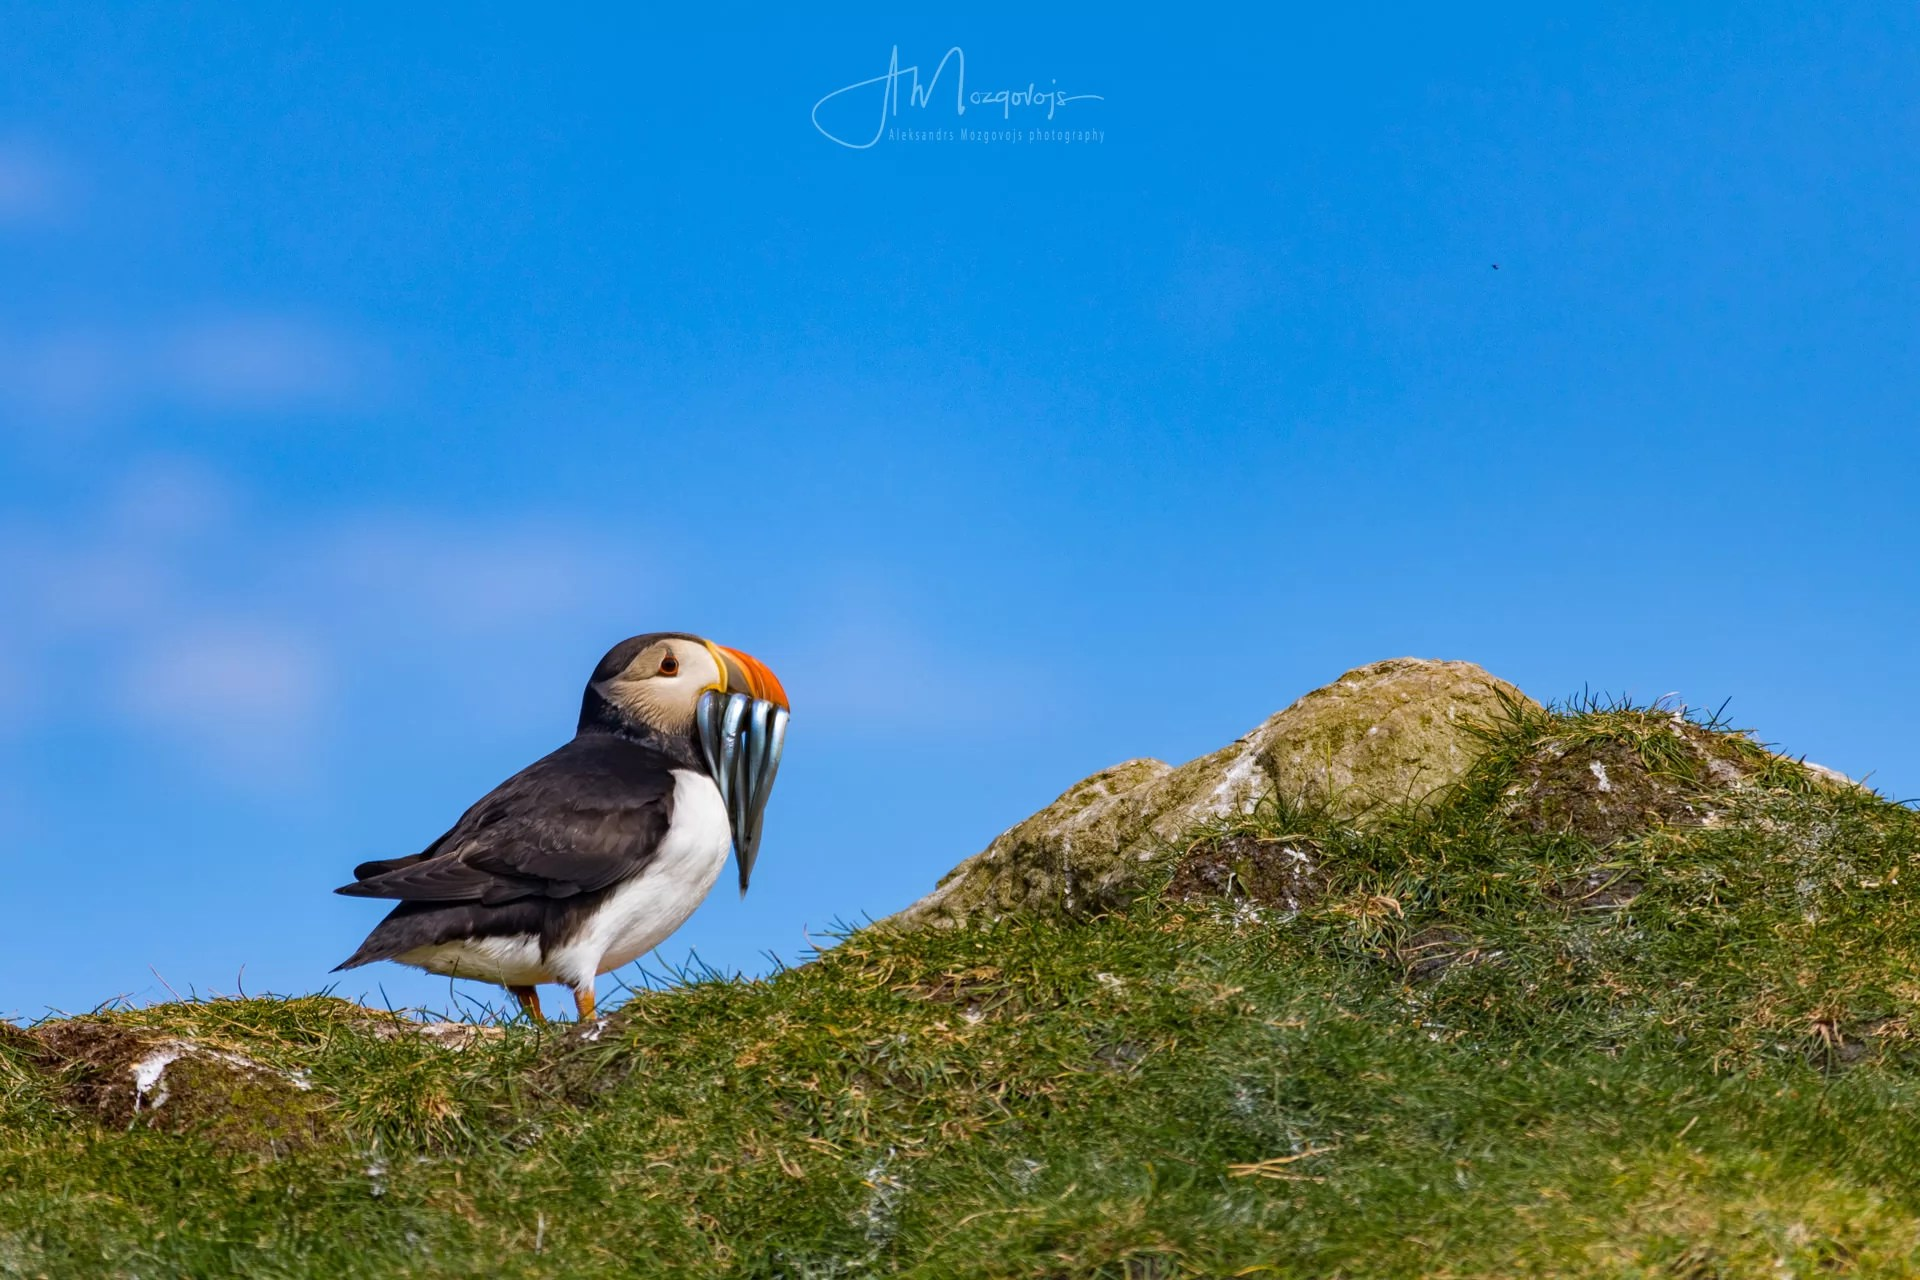 Puffin with prey